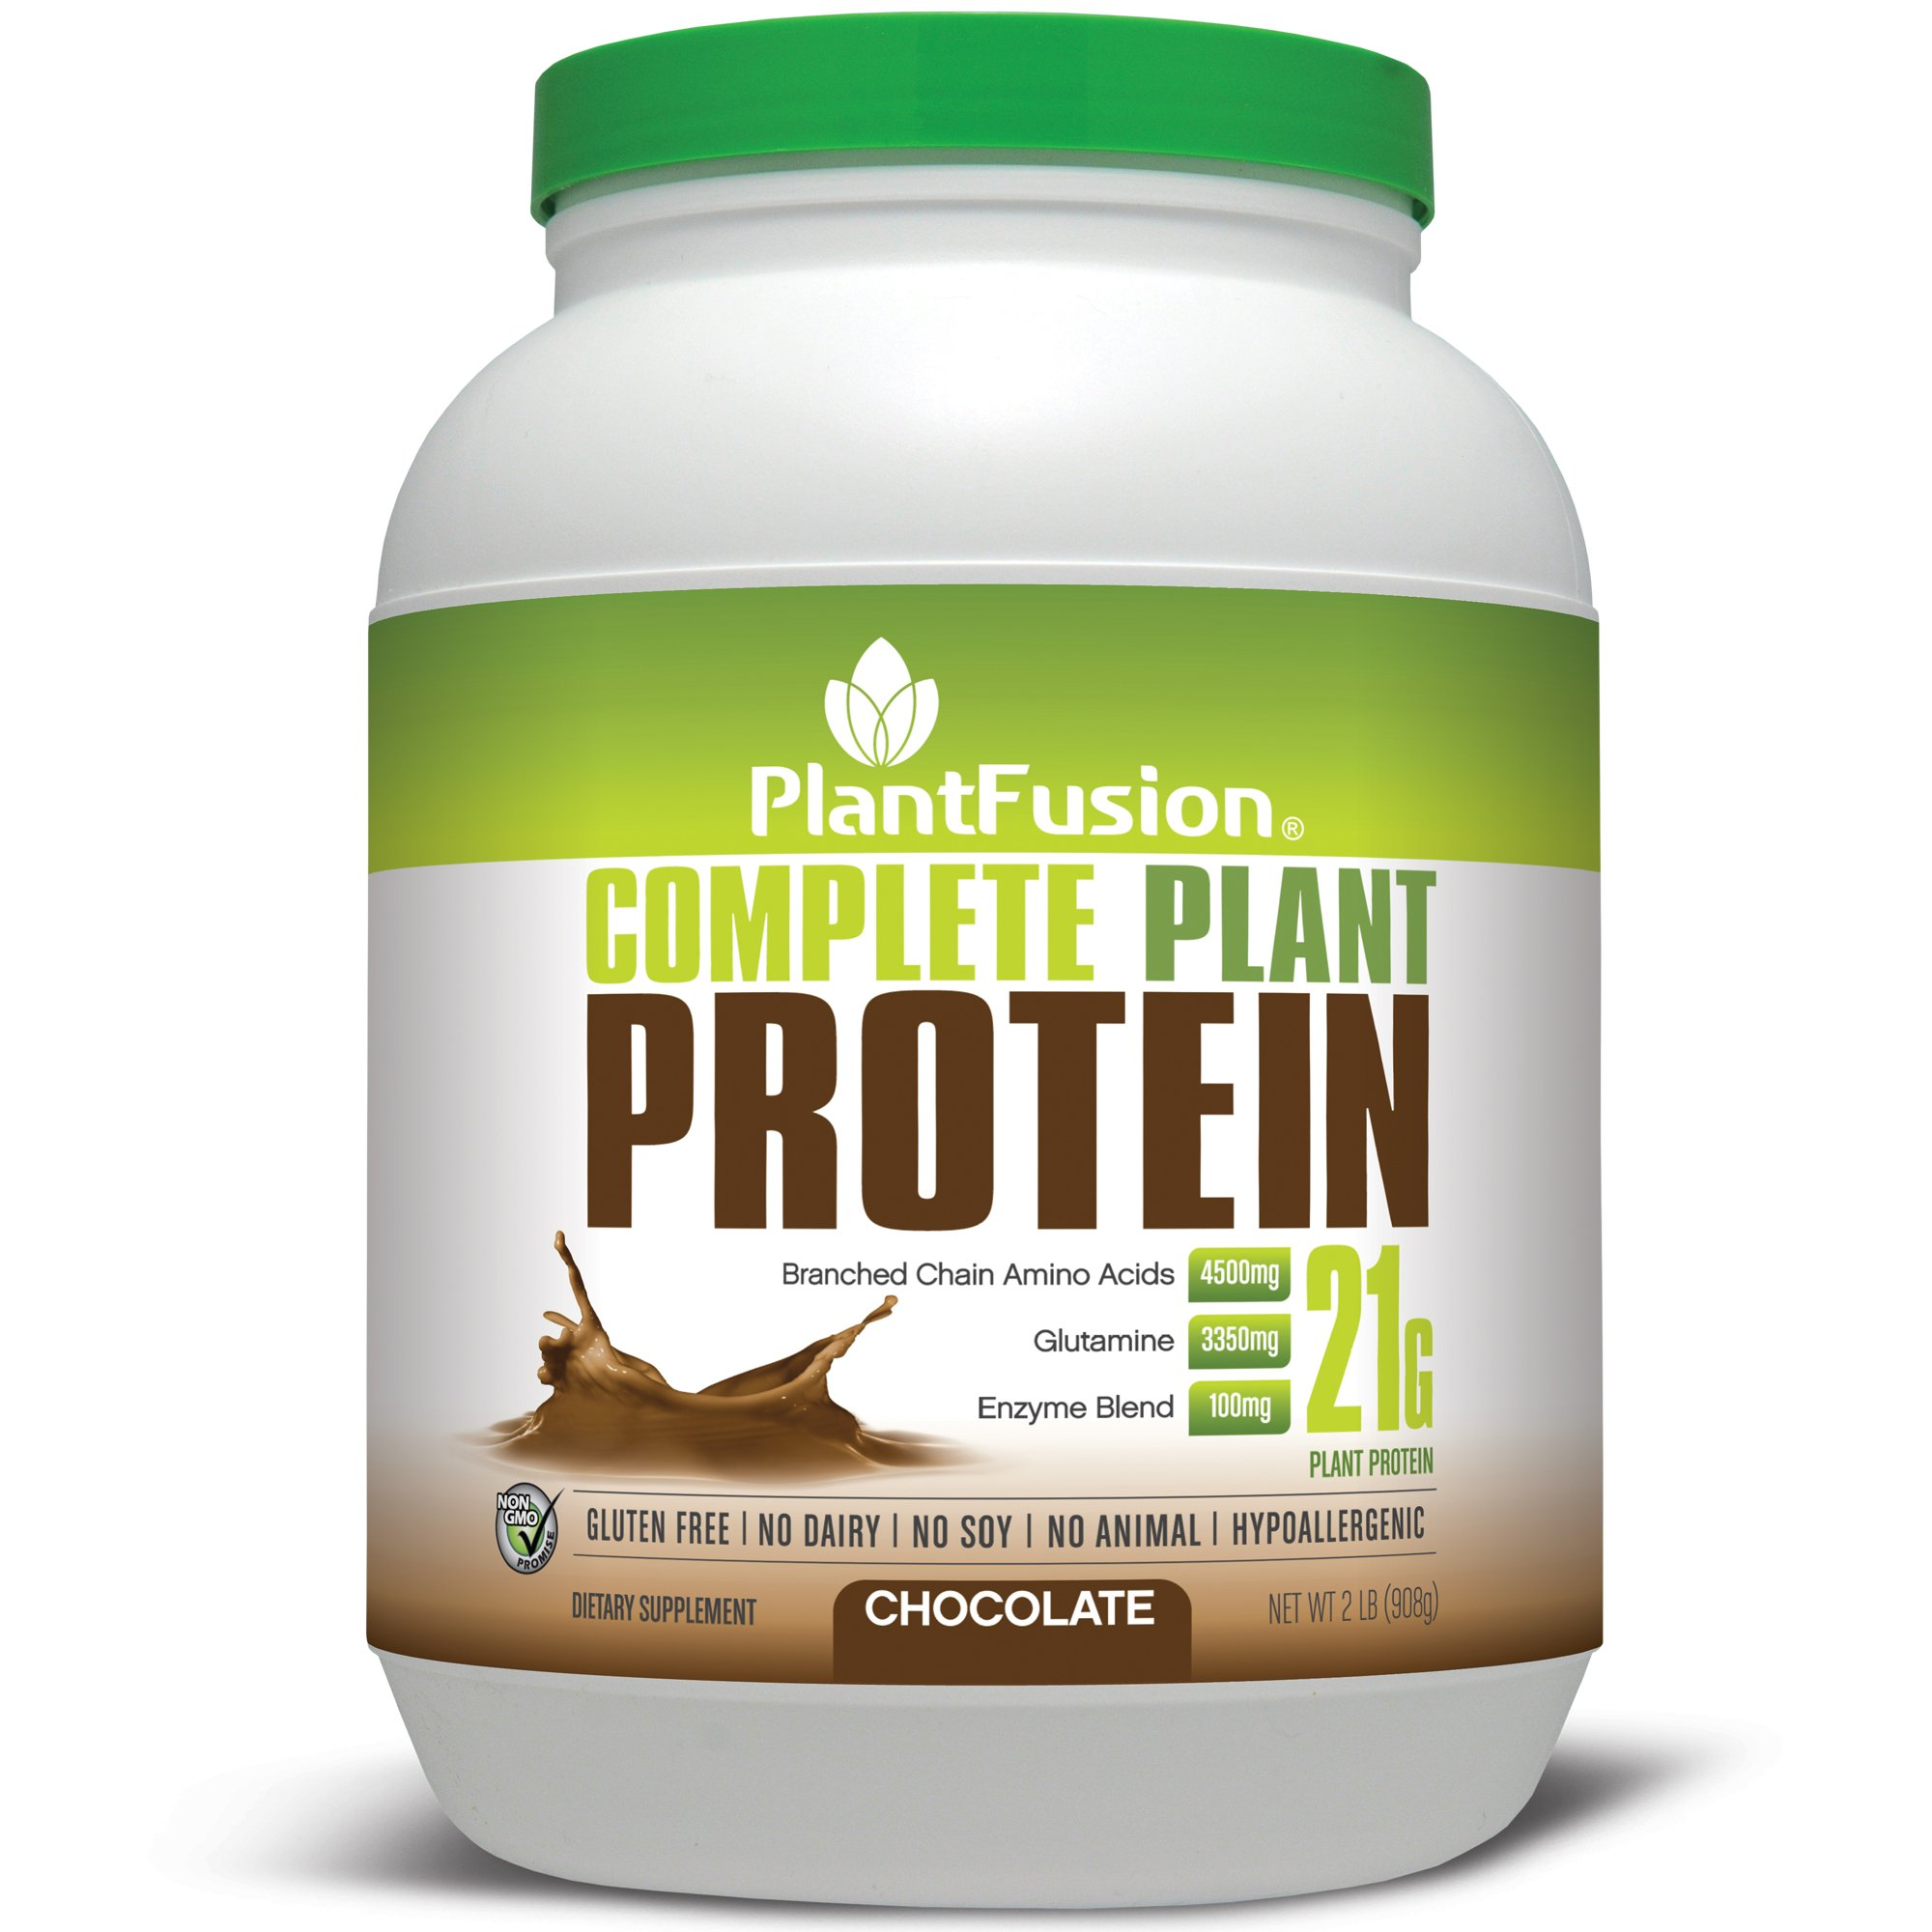 PlantFusion Complete Plant-Based Protein Powder, Chocolate, 2 Lb Tub, 30 Servings, 1 Count, Non-GMO, Gluten Free, Hypoallergenic